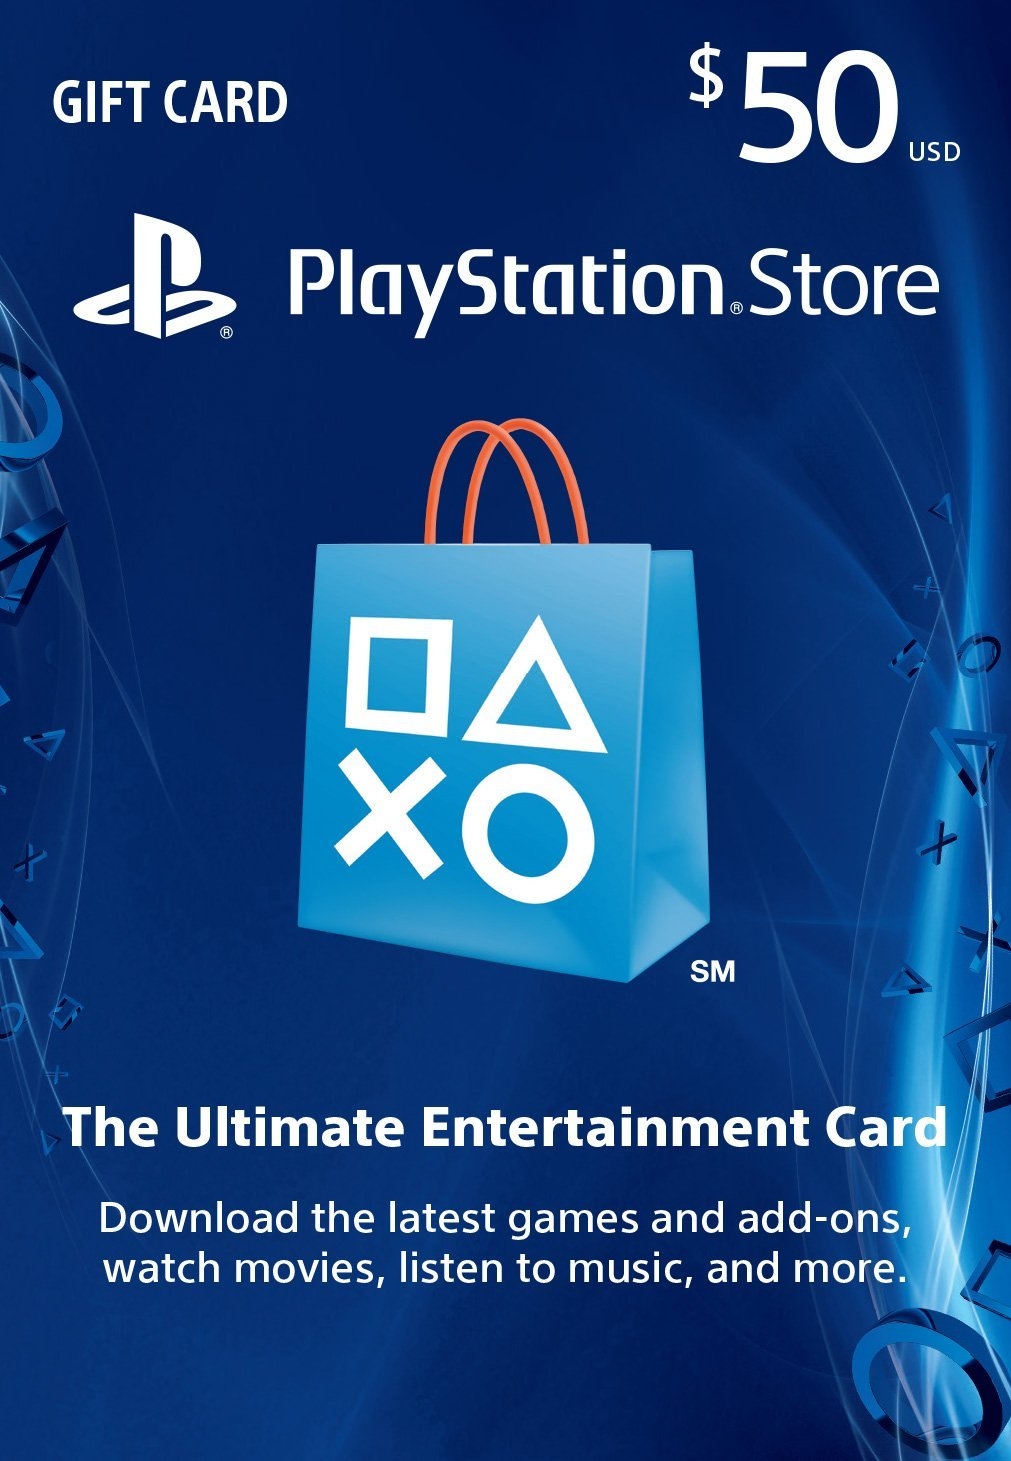 PSN Gift Card Code USA $50